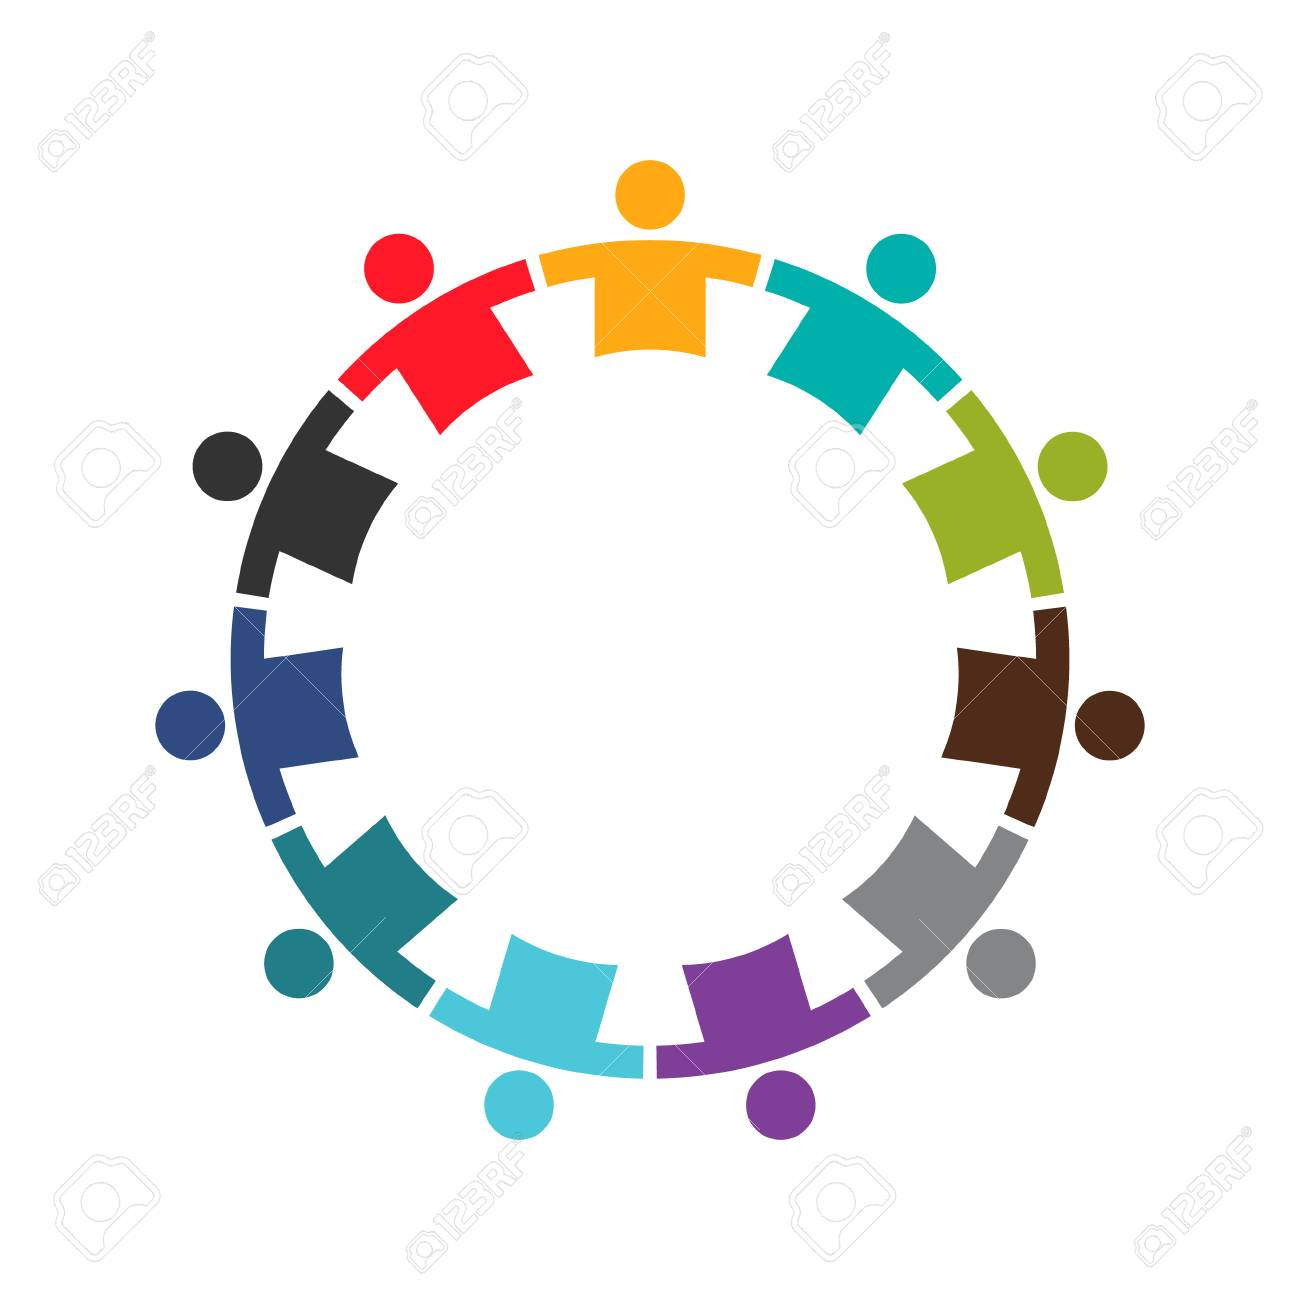 team of eleven people in a round logo design royalty free cliparts